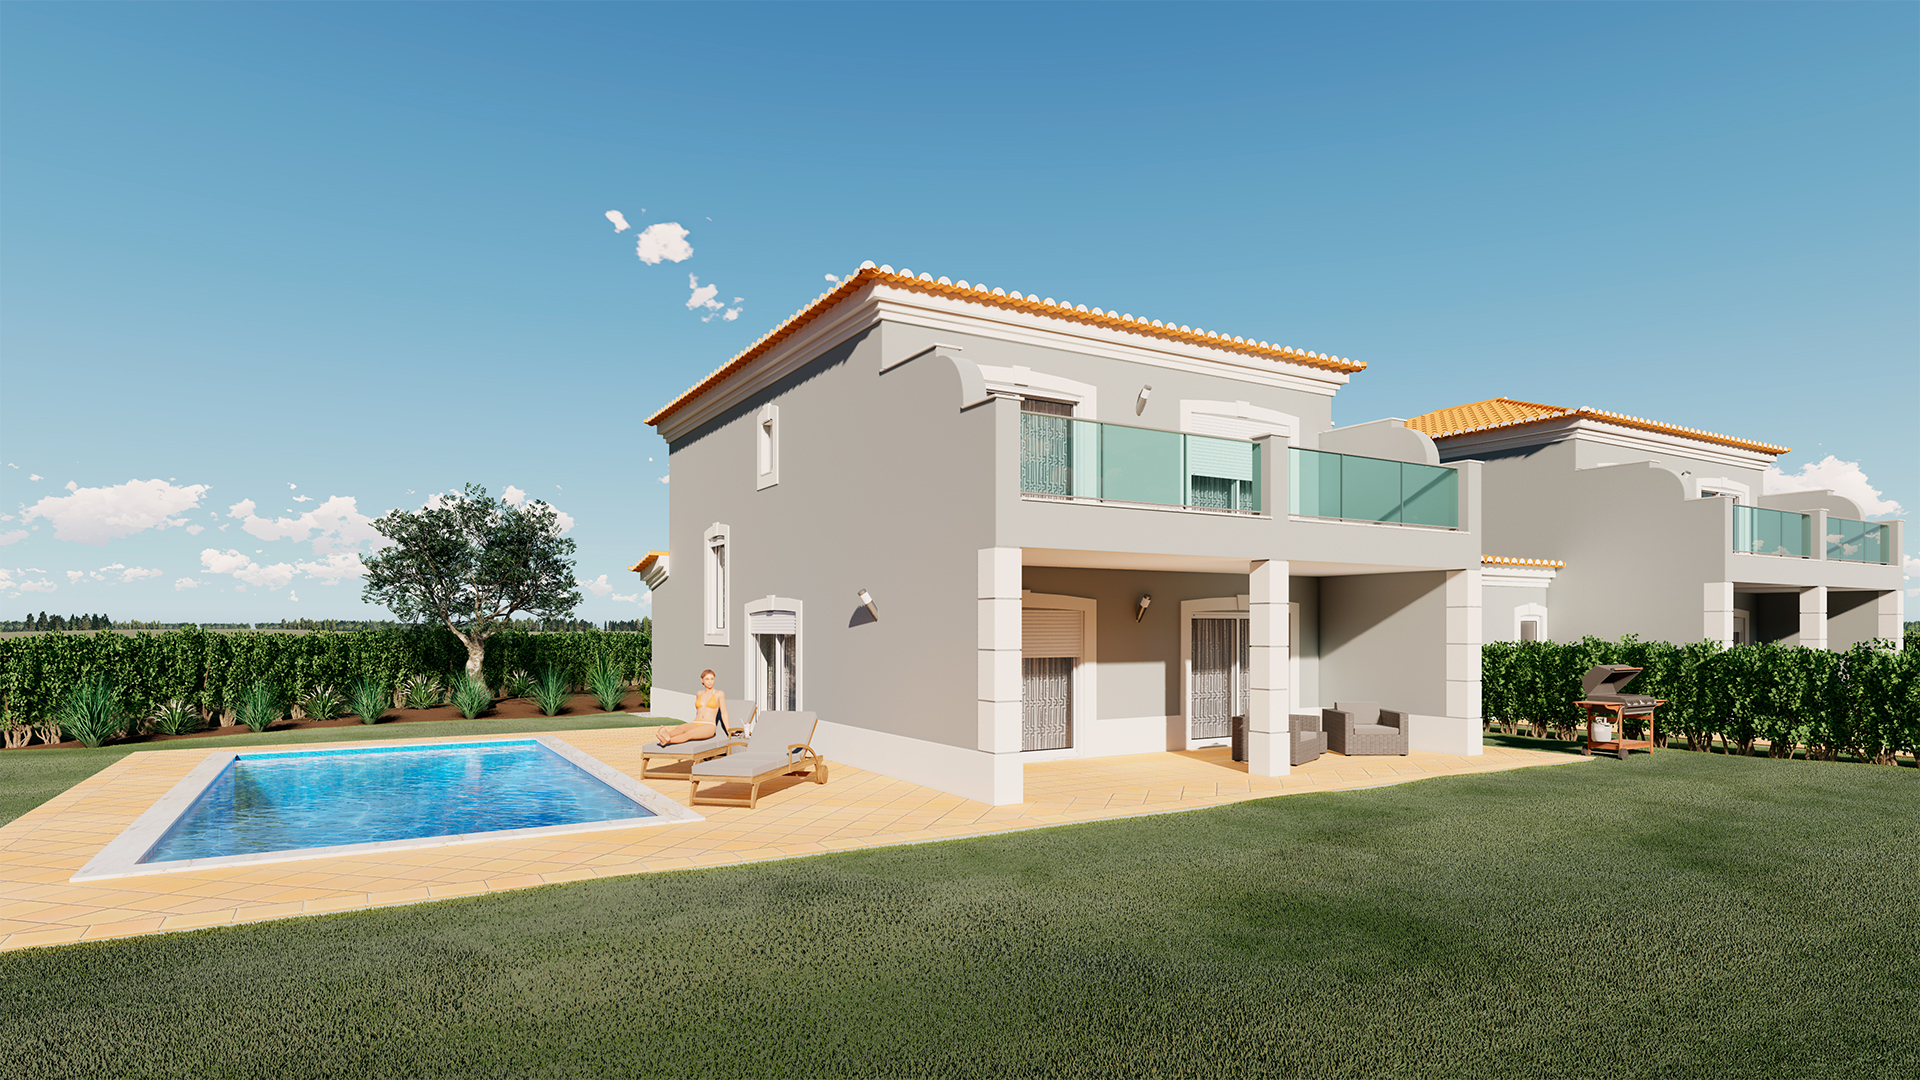 Brand New, Four Bedroom Semi-detached Golf Villas with Pools, near Lagos | LG1758 High quality, brand new, semi-detached villas with pools currently under construction in a golf resort. Close to beaches and the historic centre of Lagos. These villas are a superb investment opportunity or holiday home in the sun.